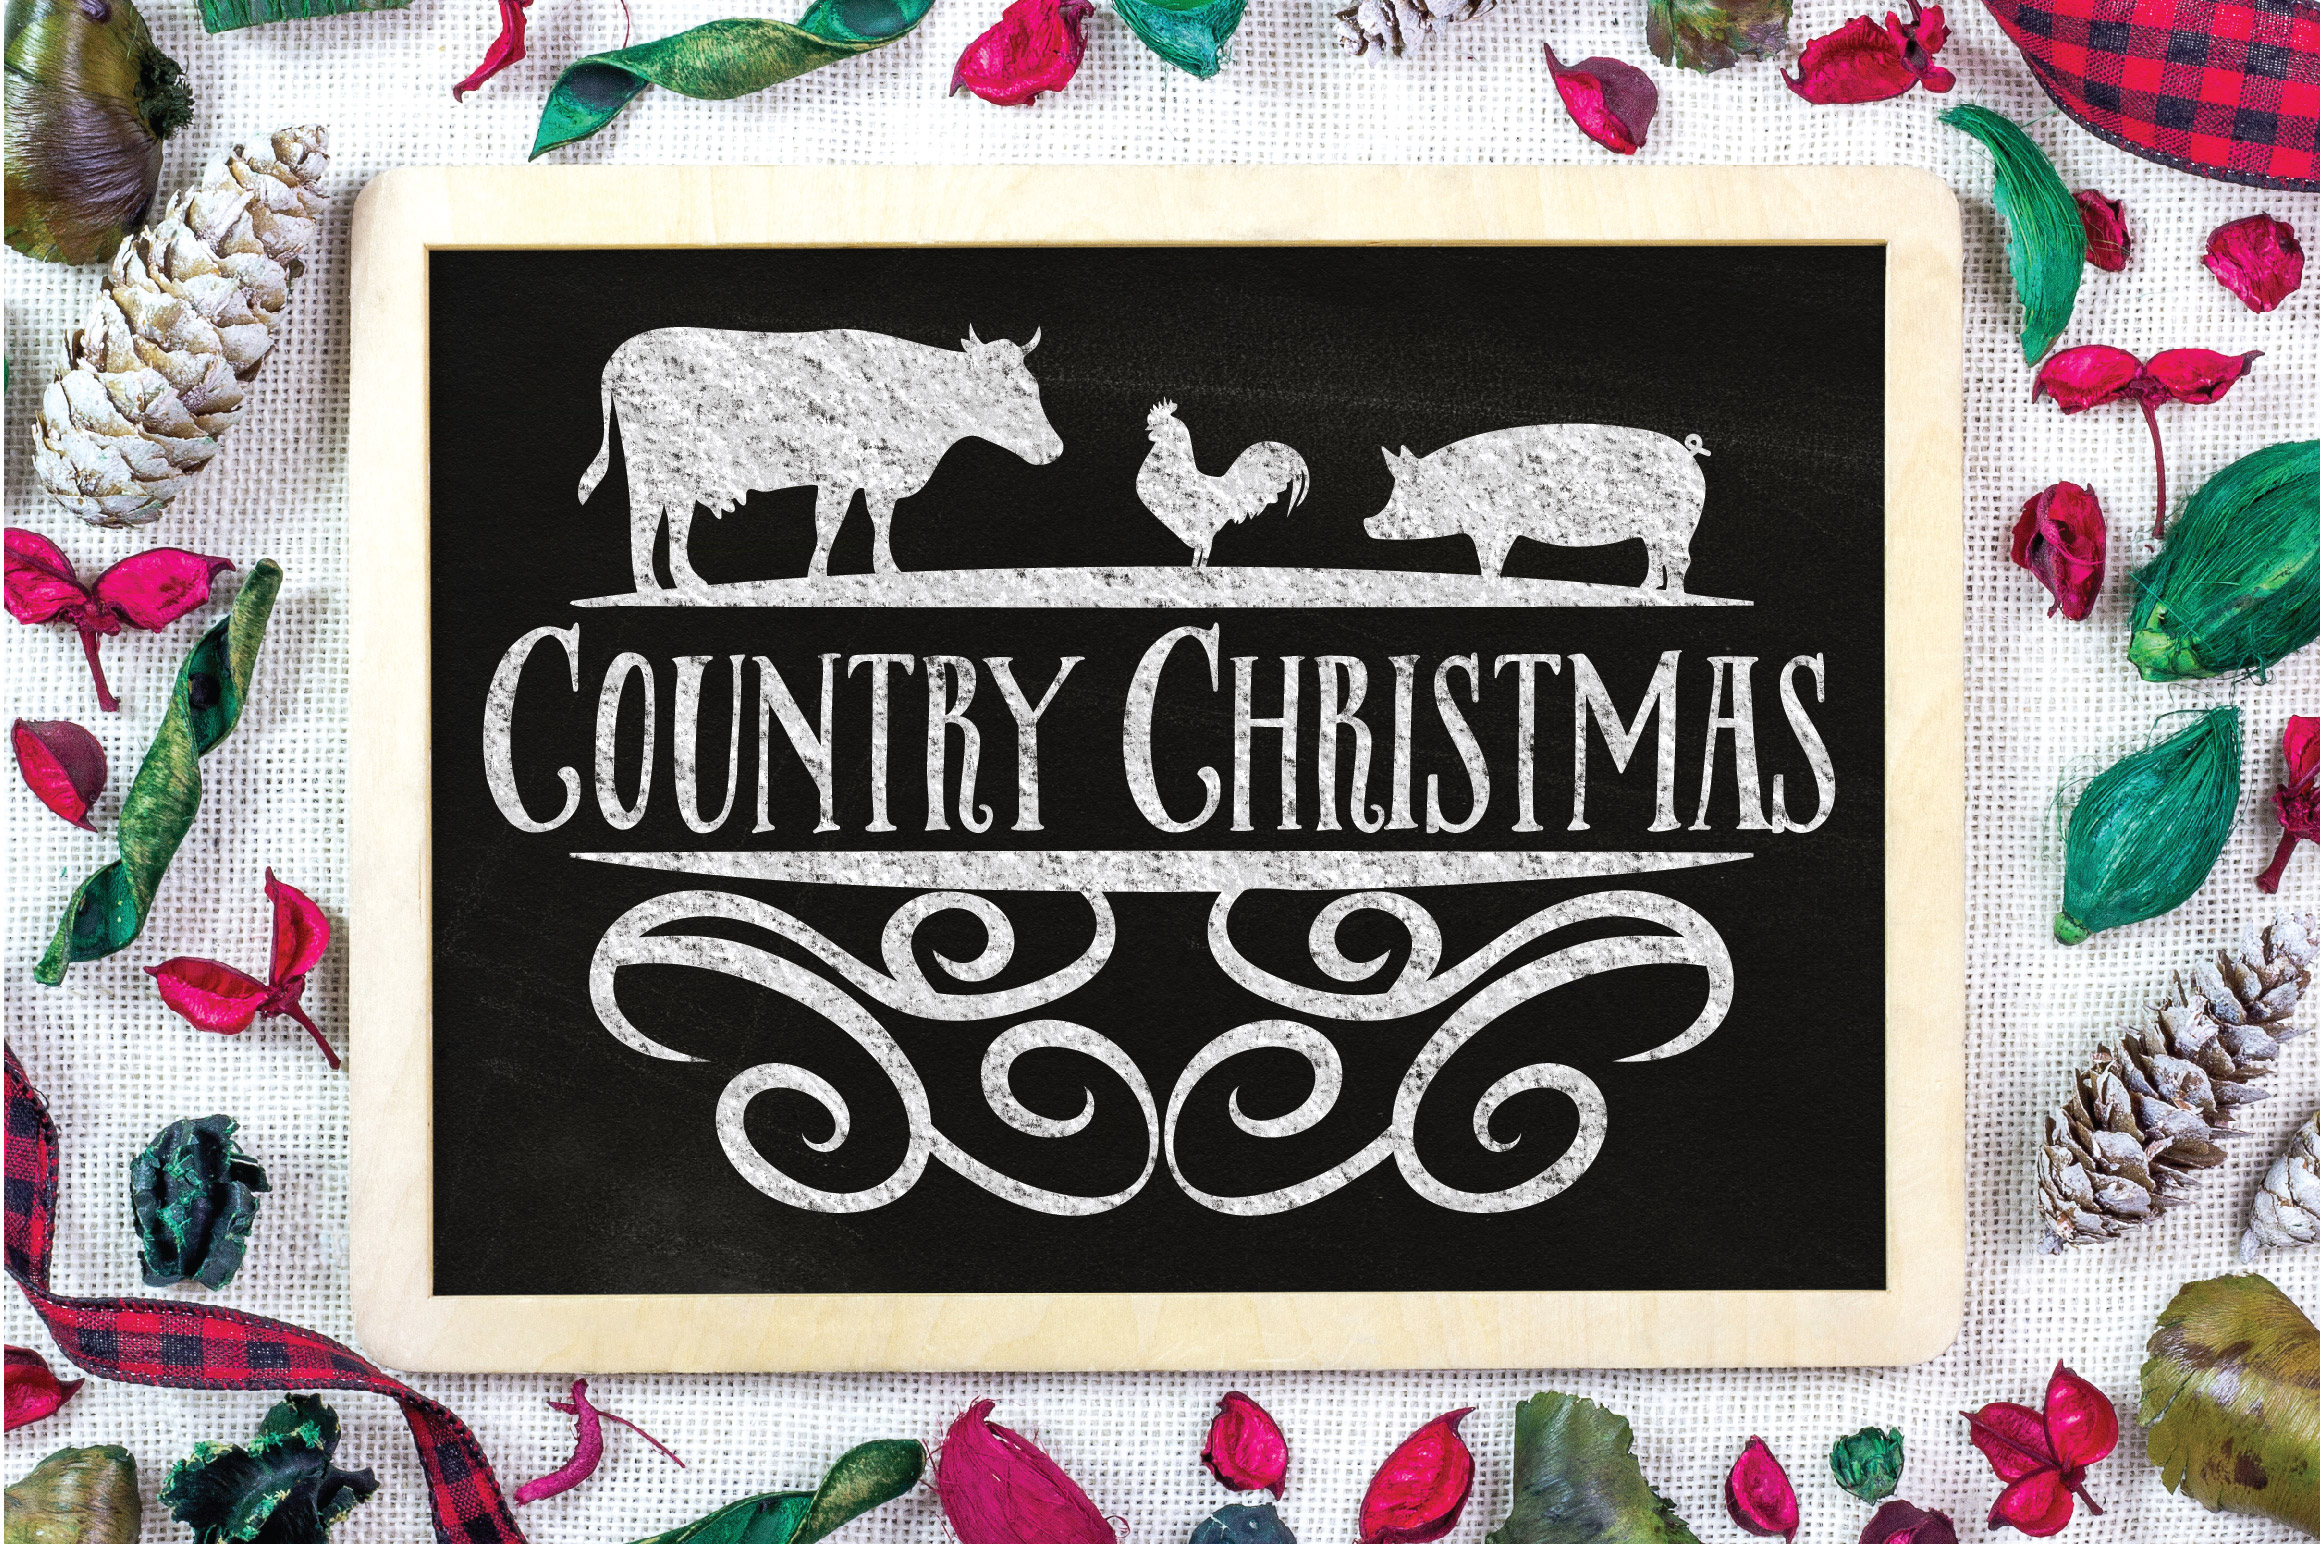 Christmas SVG Cut File - Country Christmas SVG DXF PNG EPS example image 2